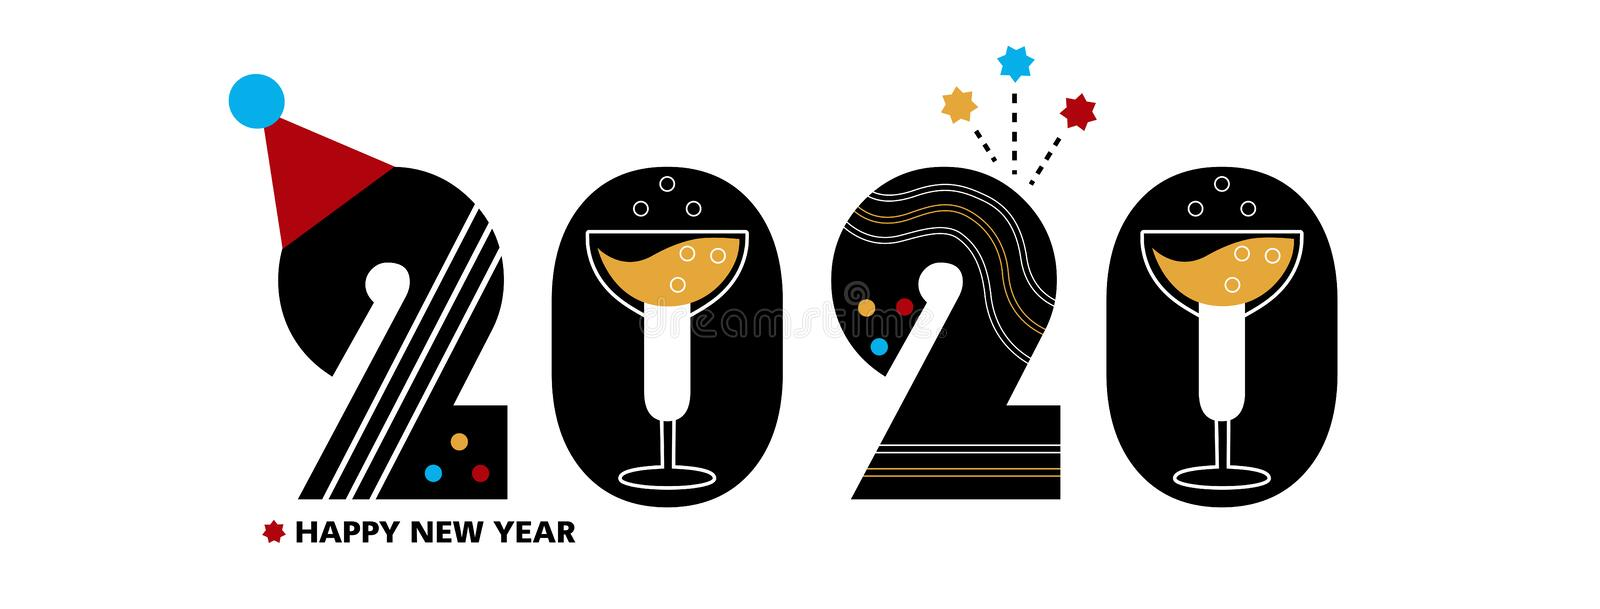 2020 - New Year site or facebook cover, vector template for a poster, banner, postcard vector illustration